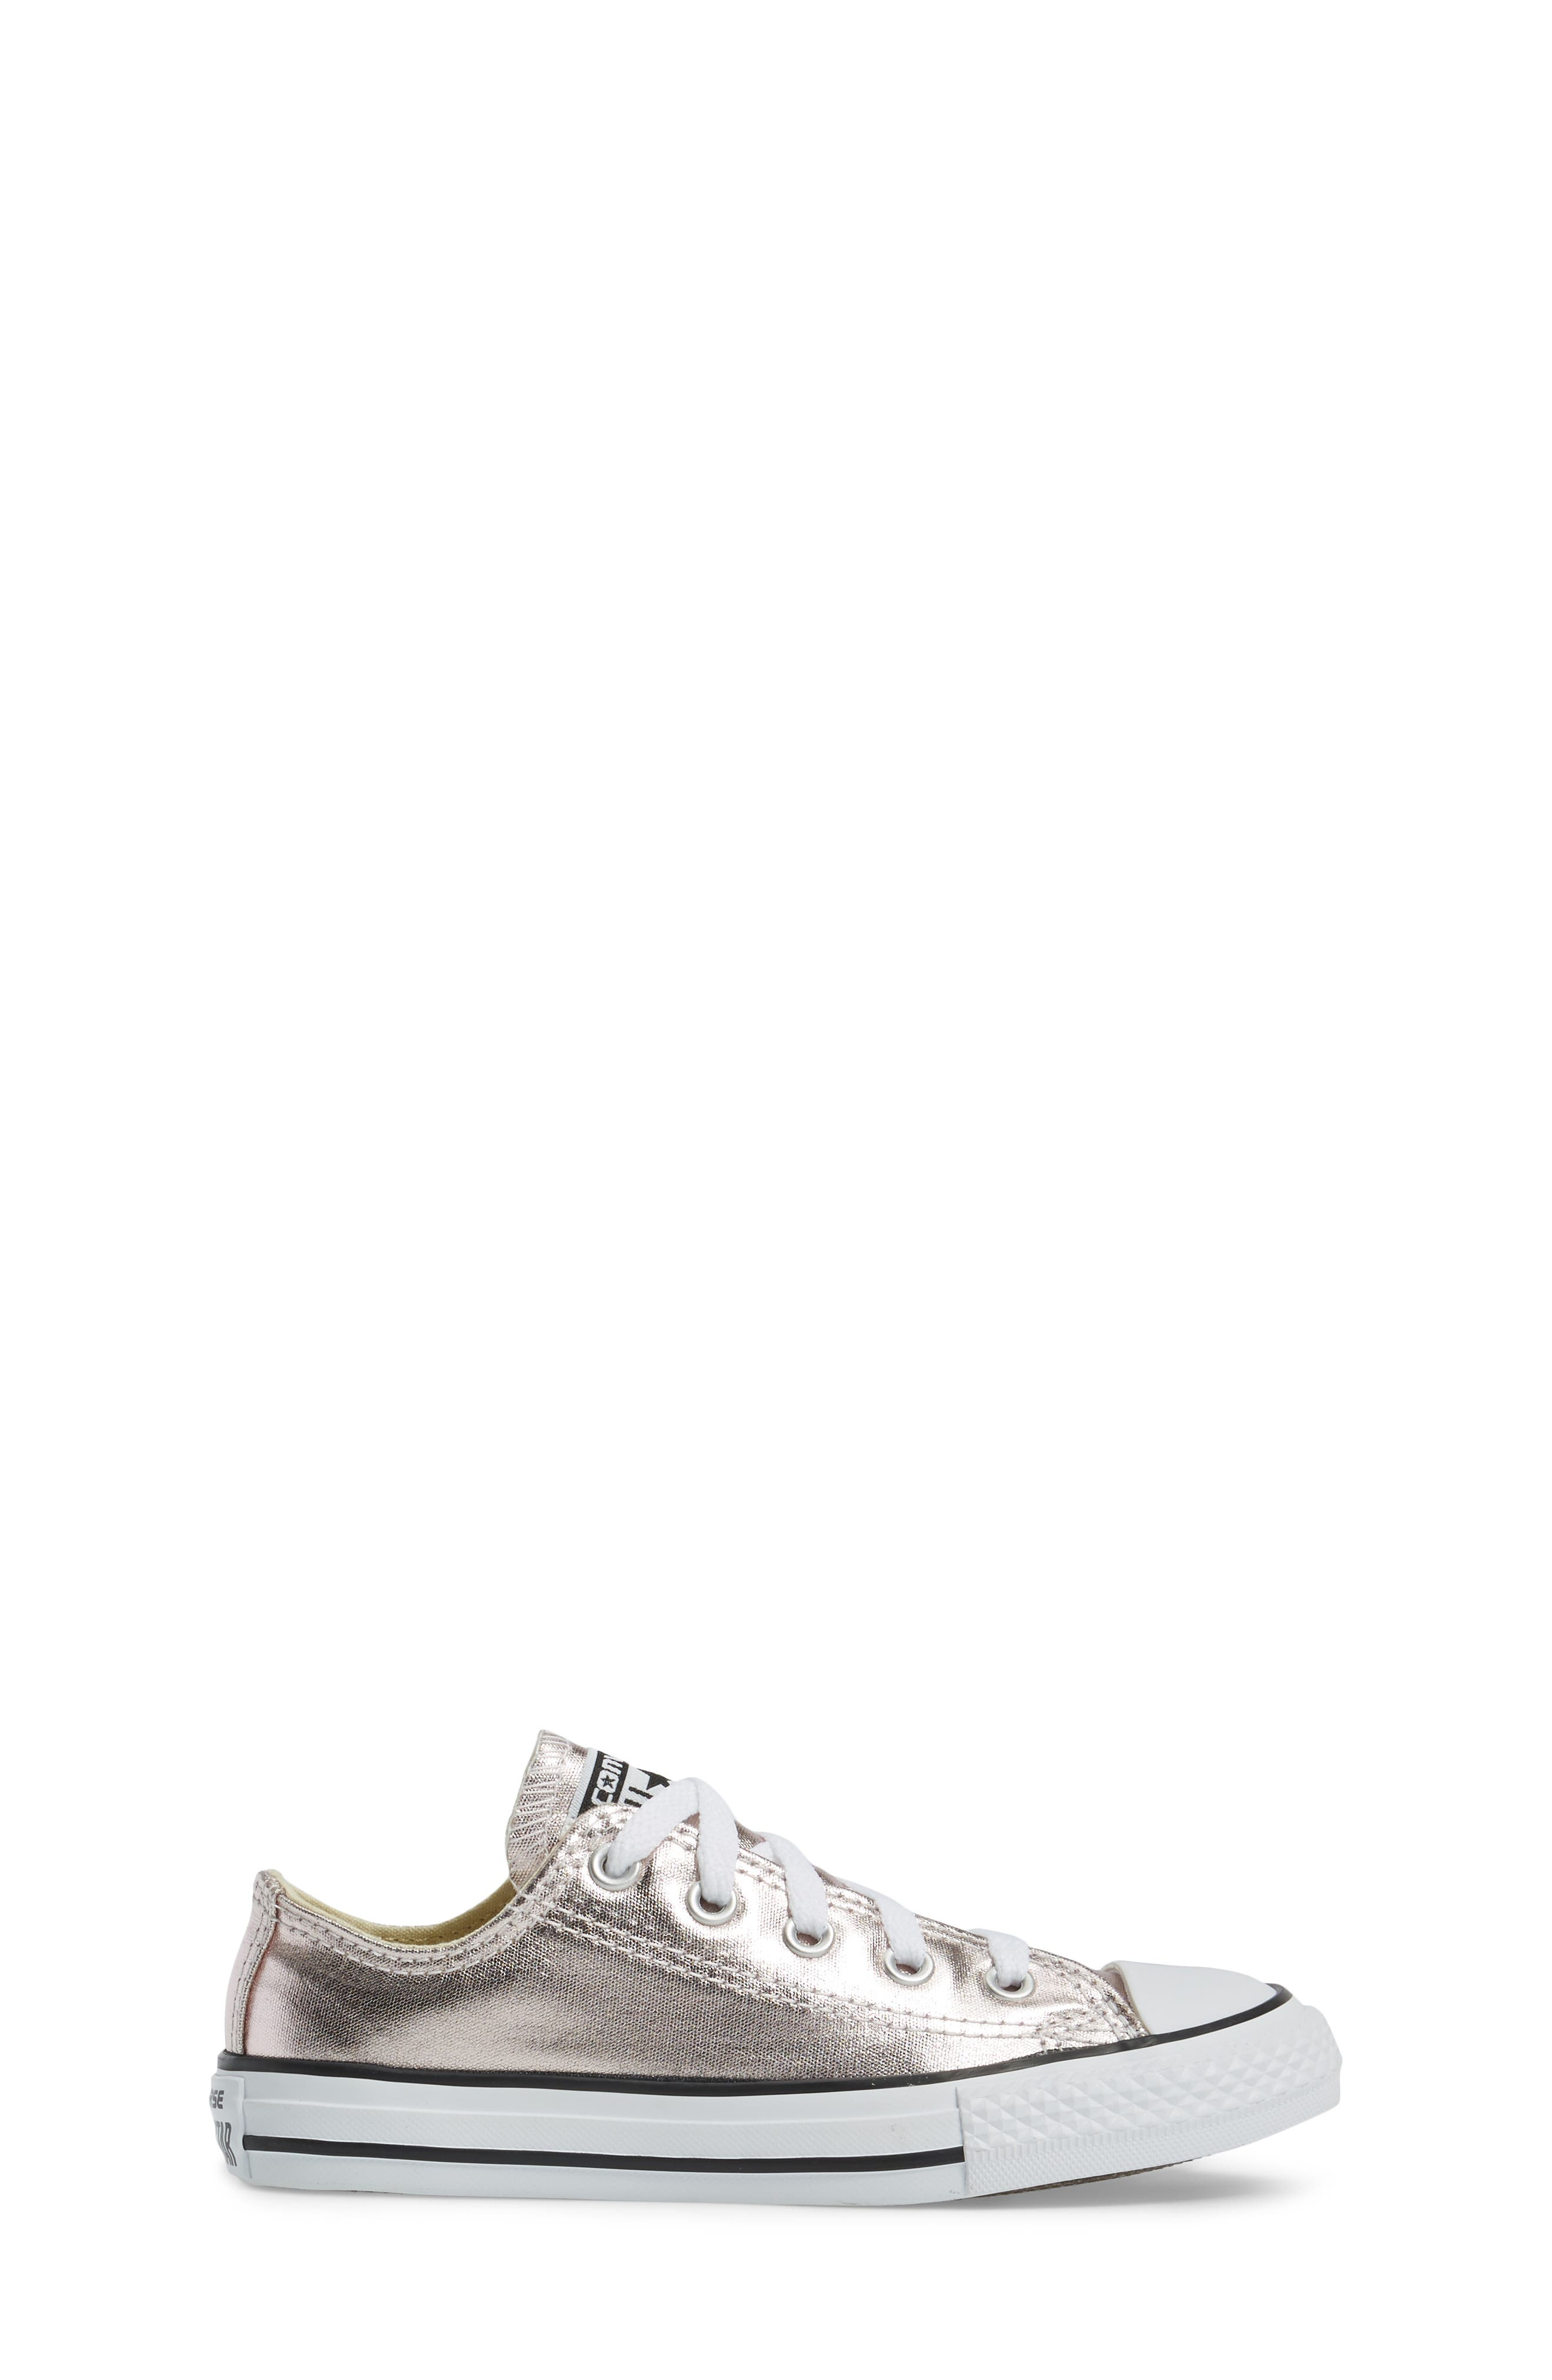 Alternate Image 3  - Converse Chuck Taylor® All Star® Ox Metallic Low Top Sneaker (Toddler & Little Kid)